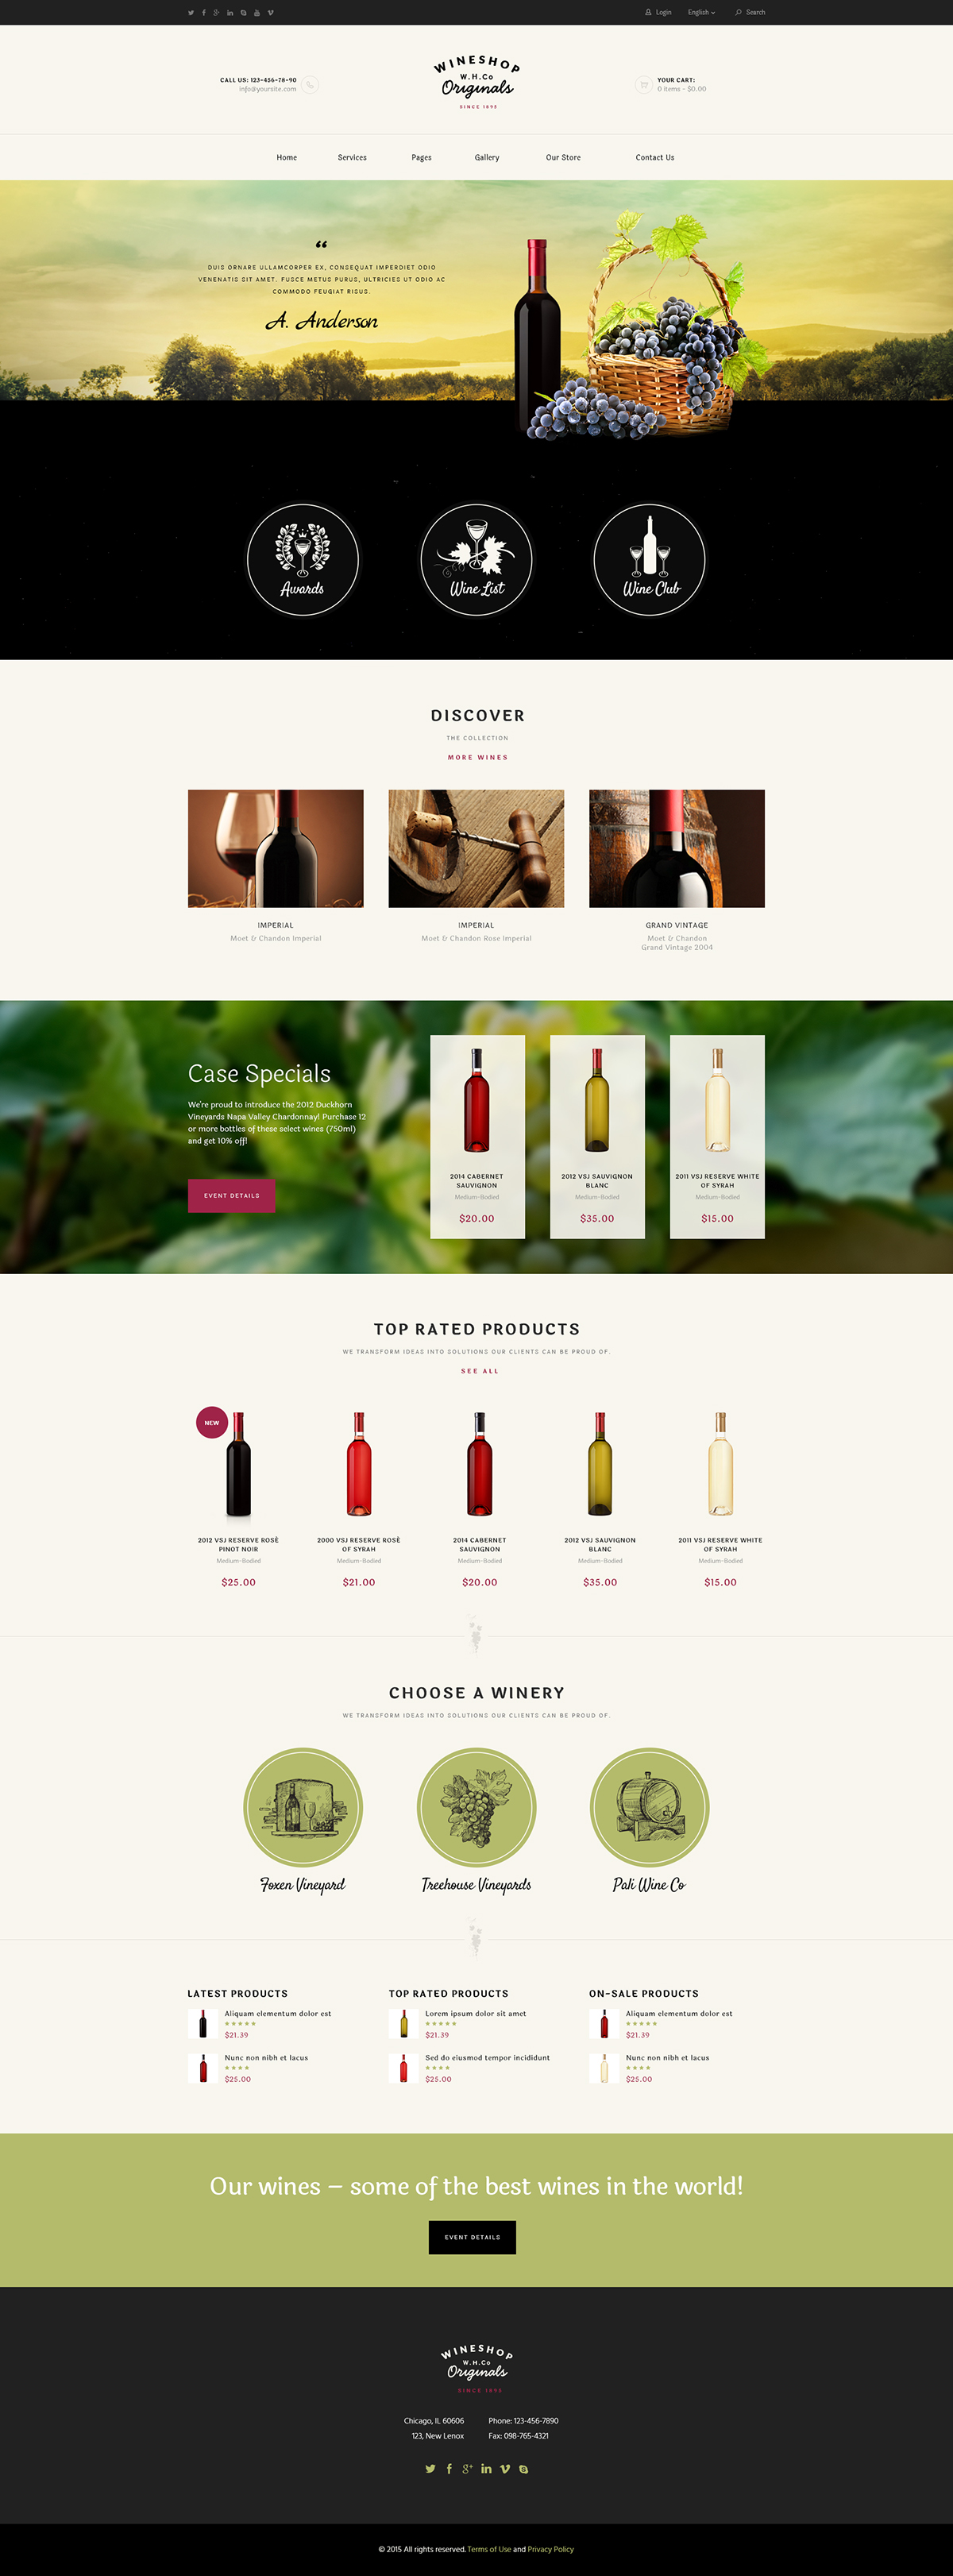 dbafddadffcd-web-template-website-templates-wallpaper-wp5003038